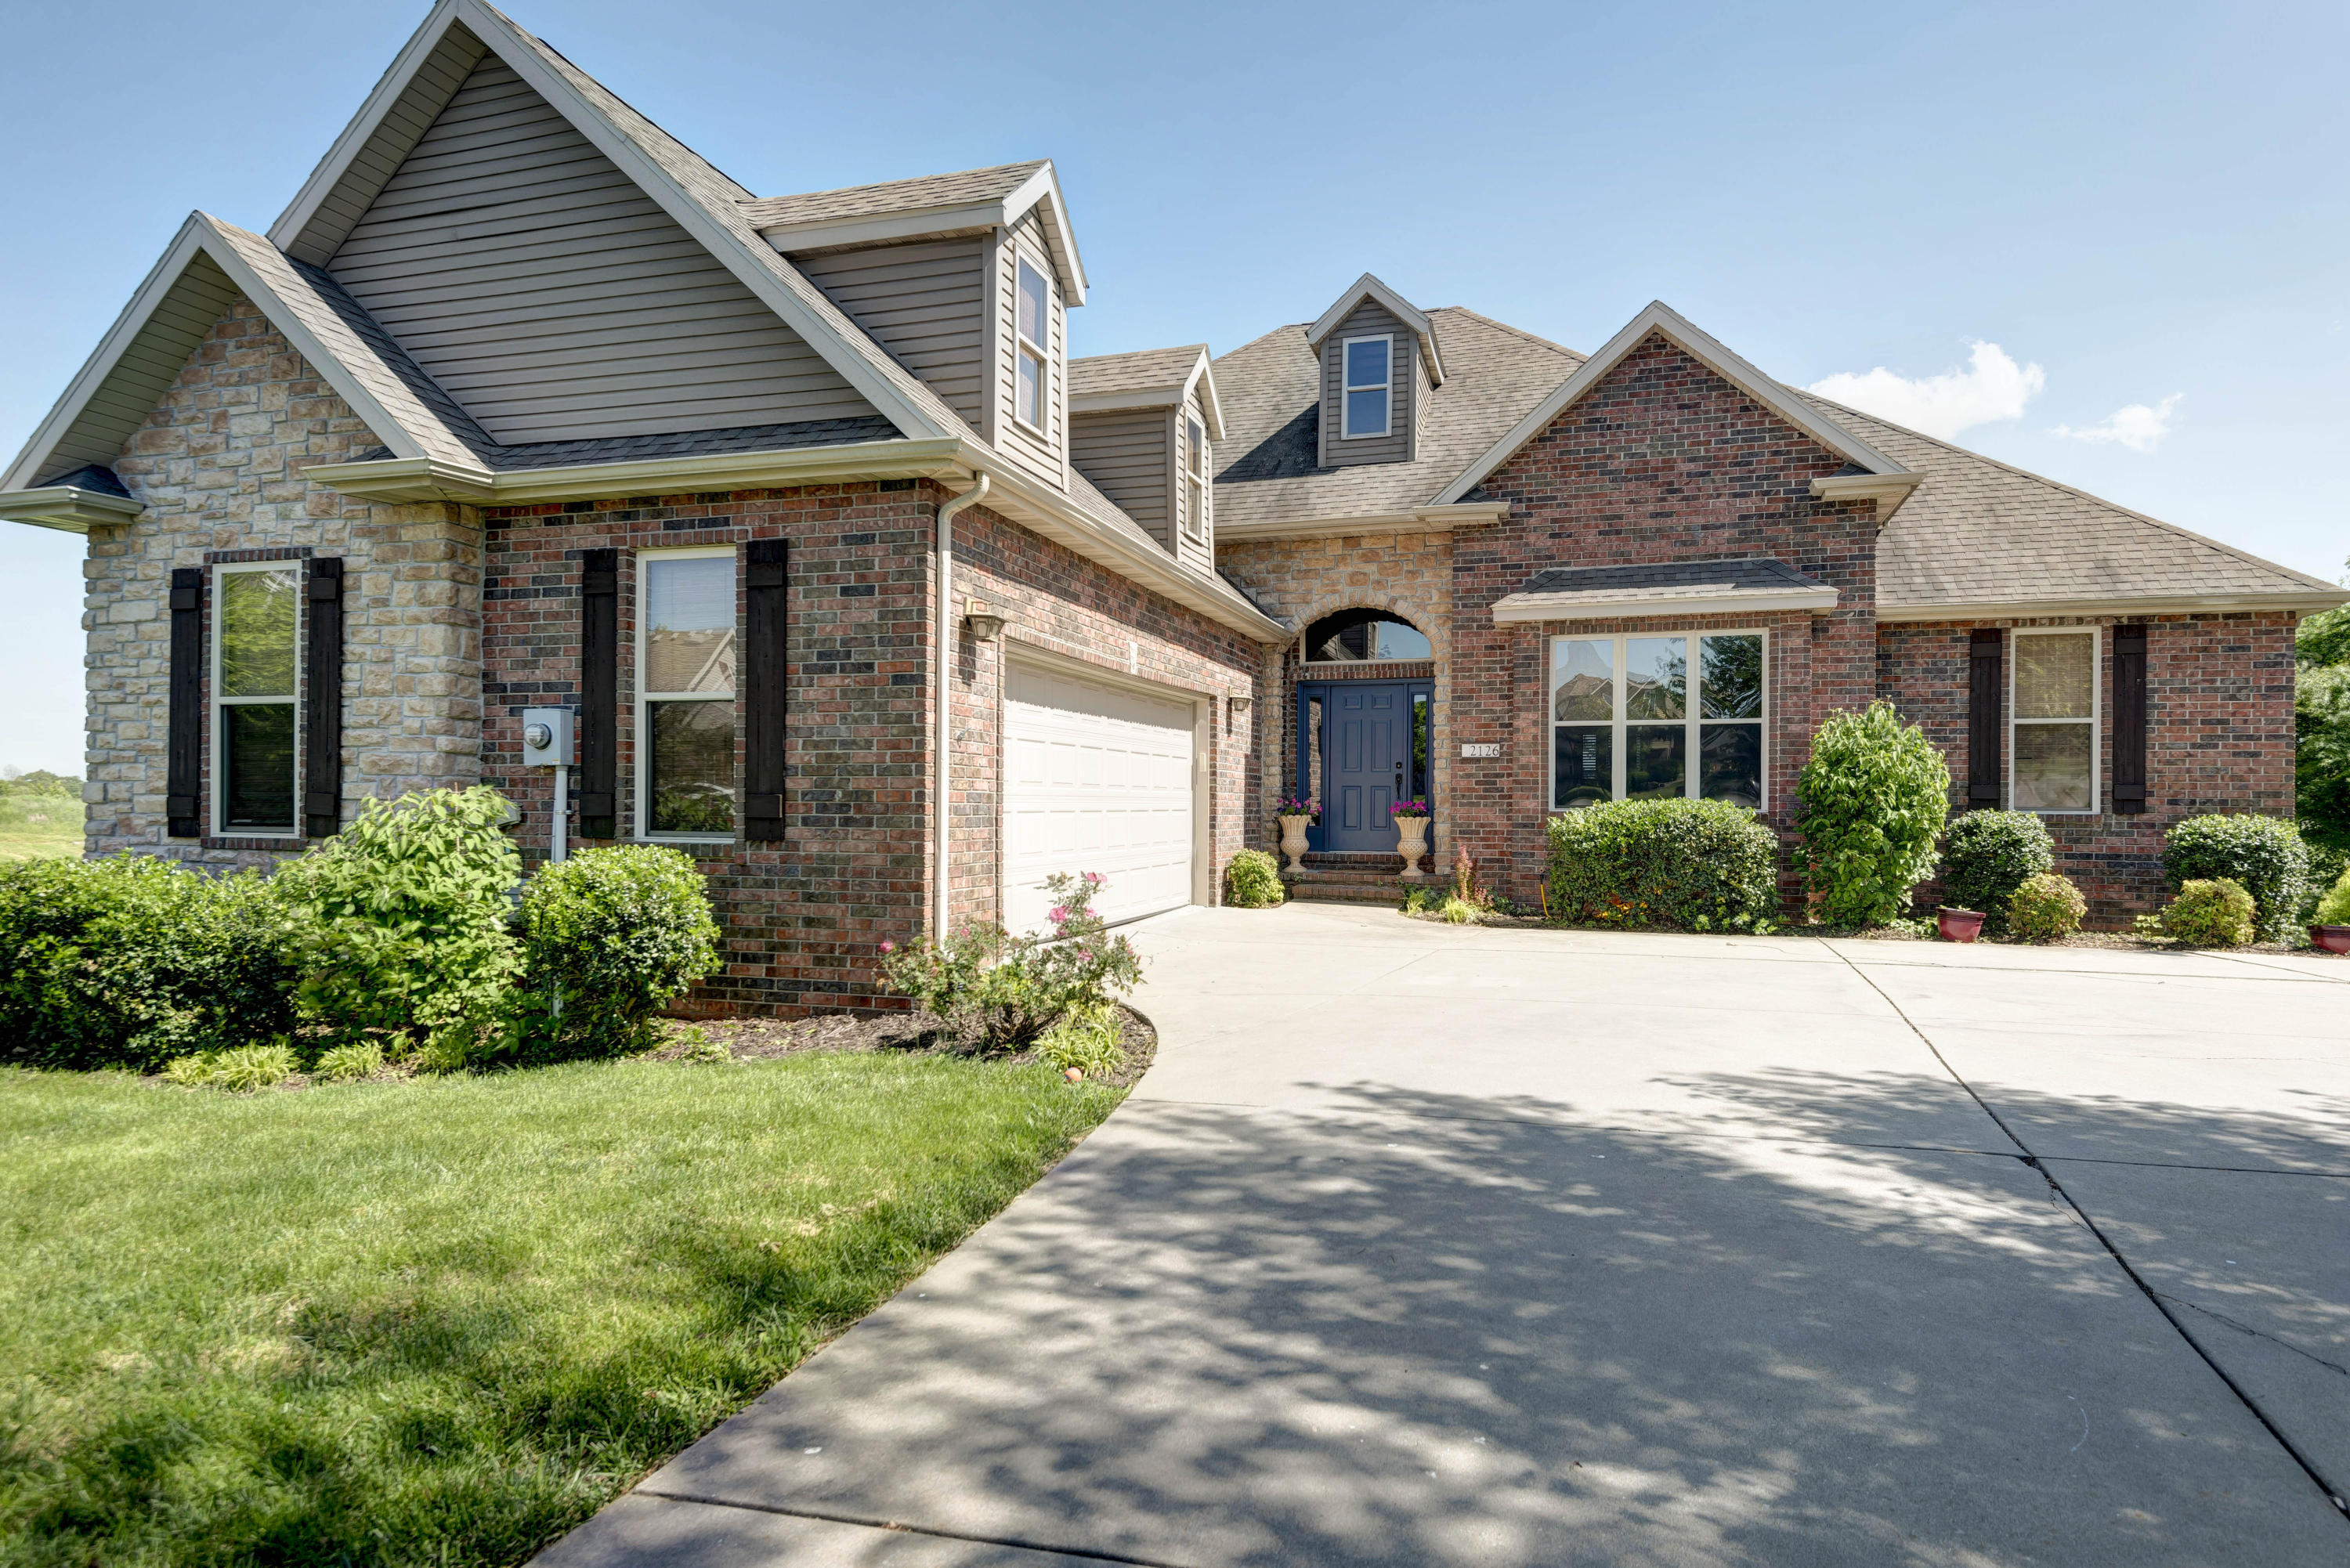 2126 North Williamsburg Lane Ozark, MO 65721